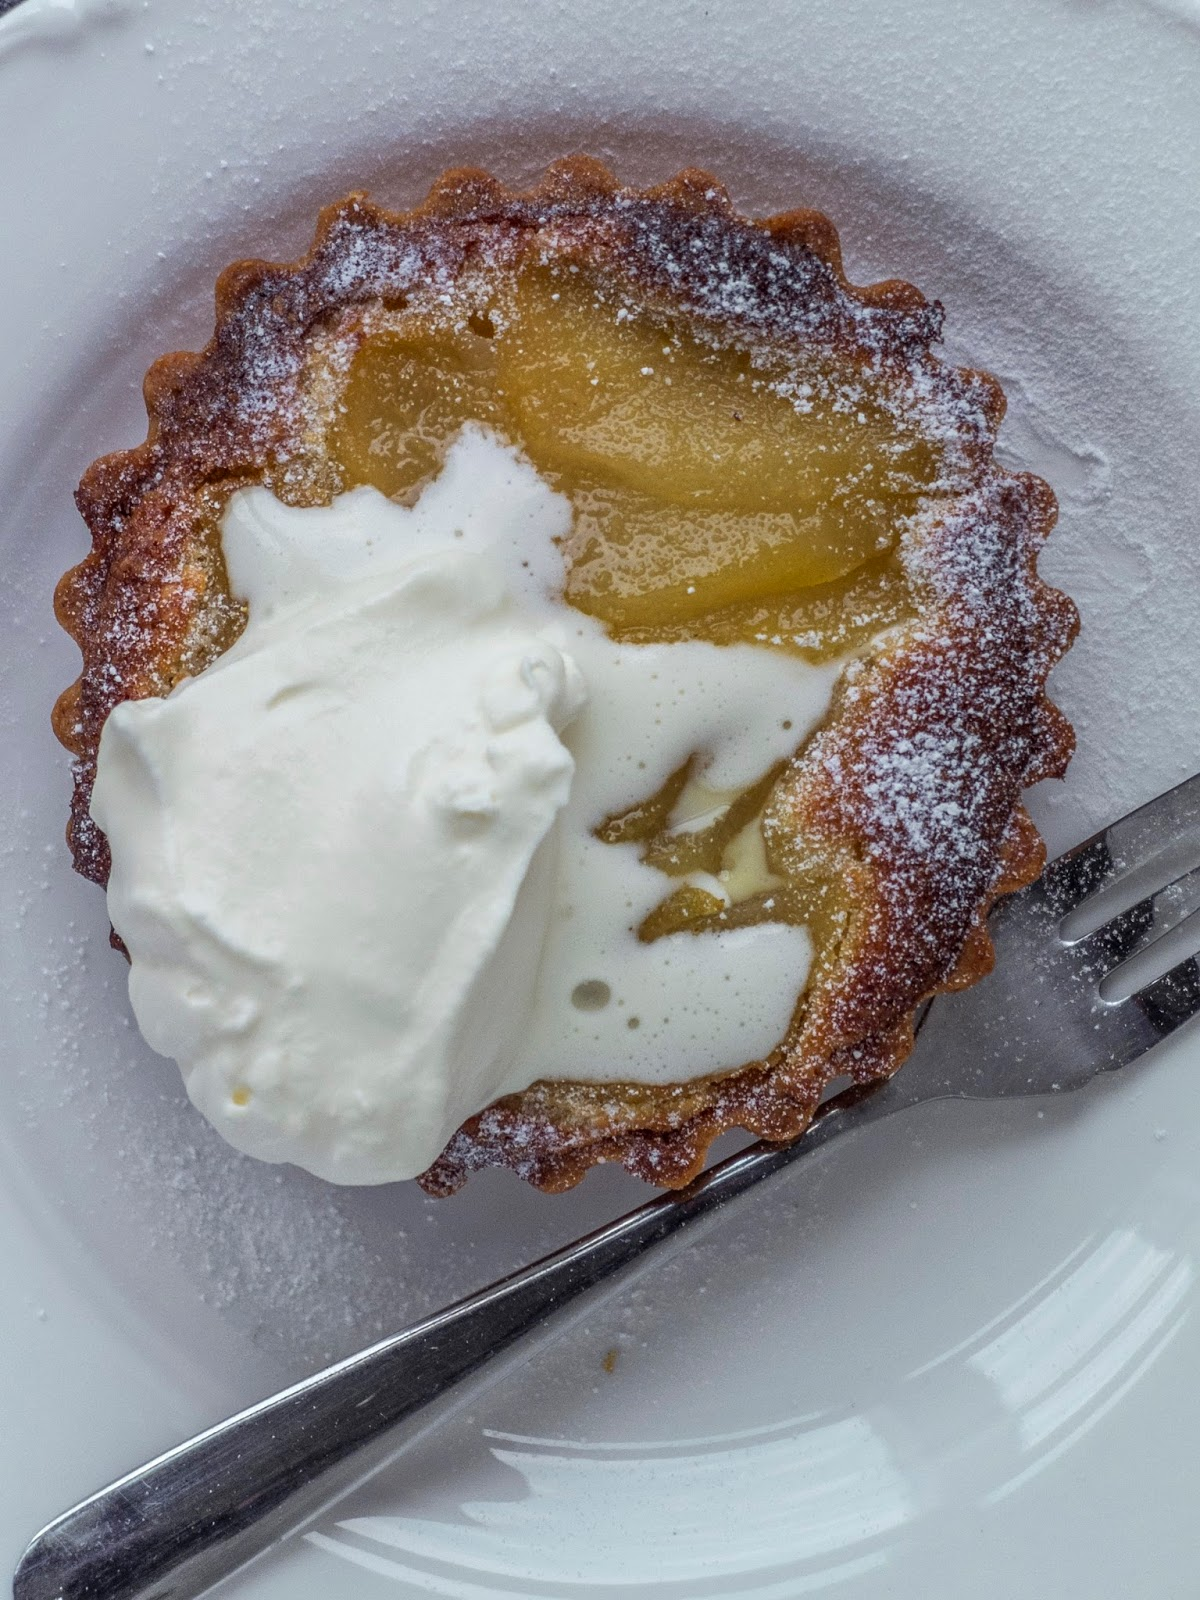 A closeup image of a sweet pastry pear tart with a dollop of cream on top.